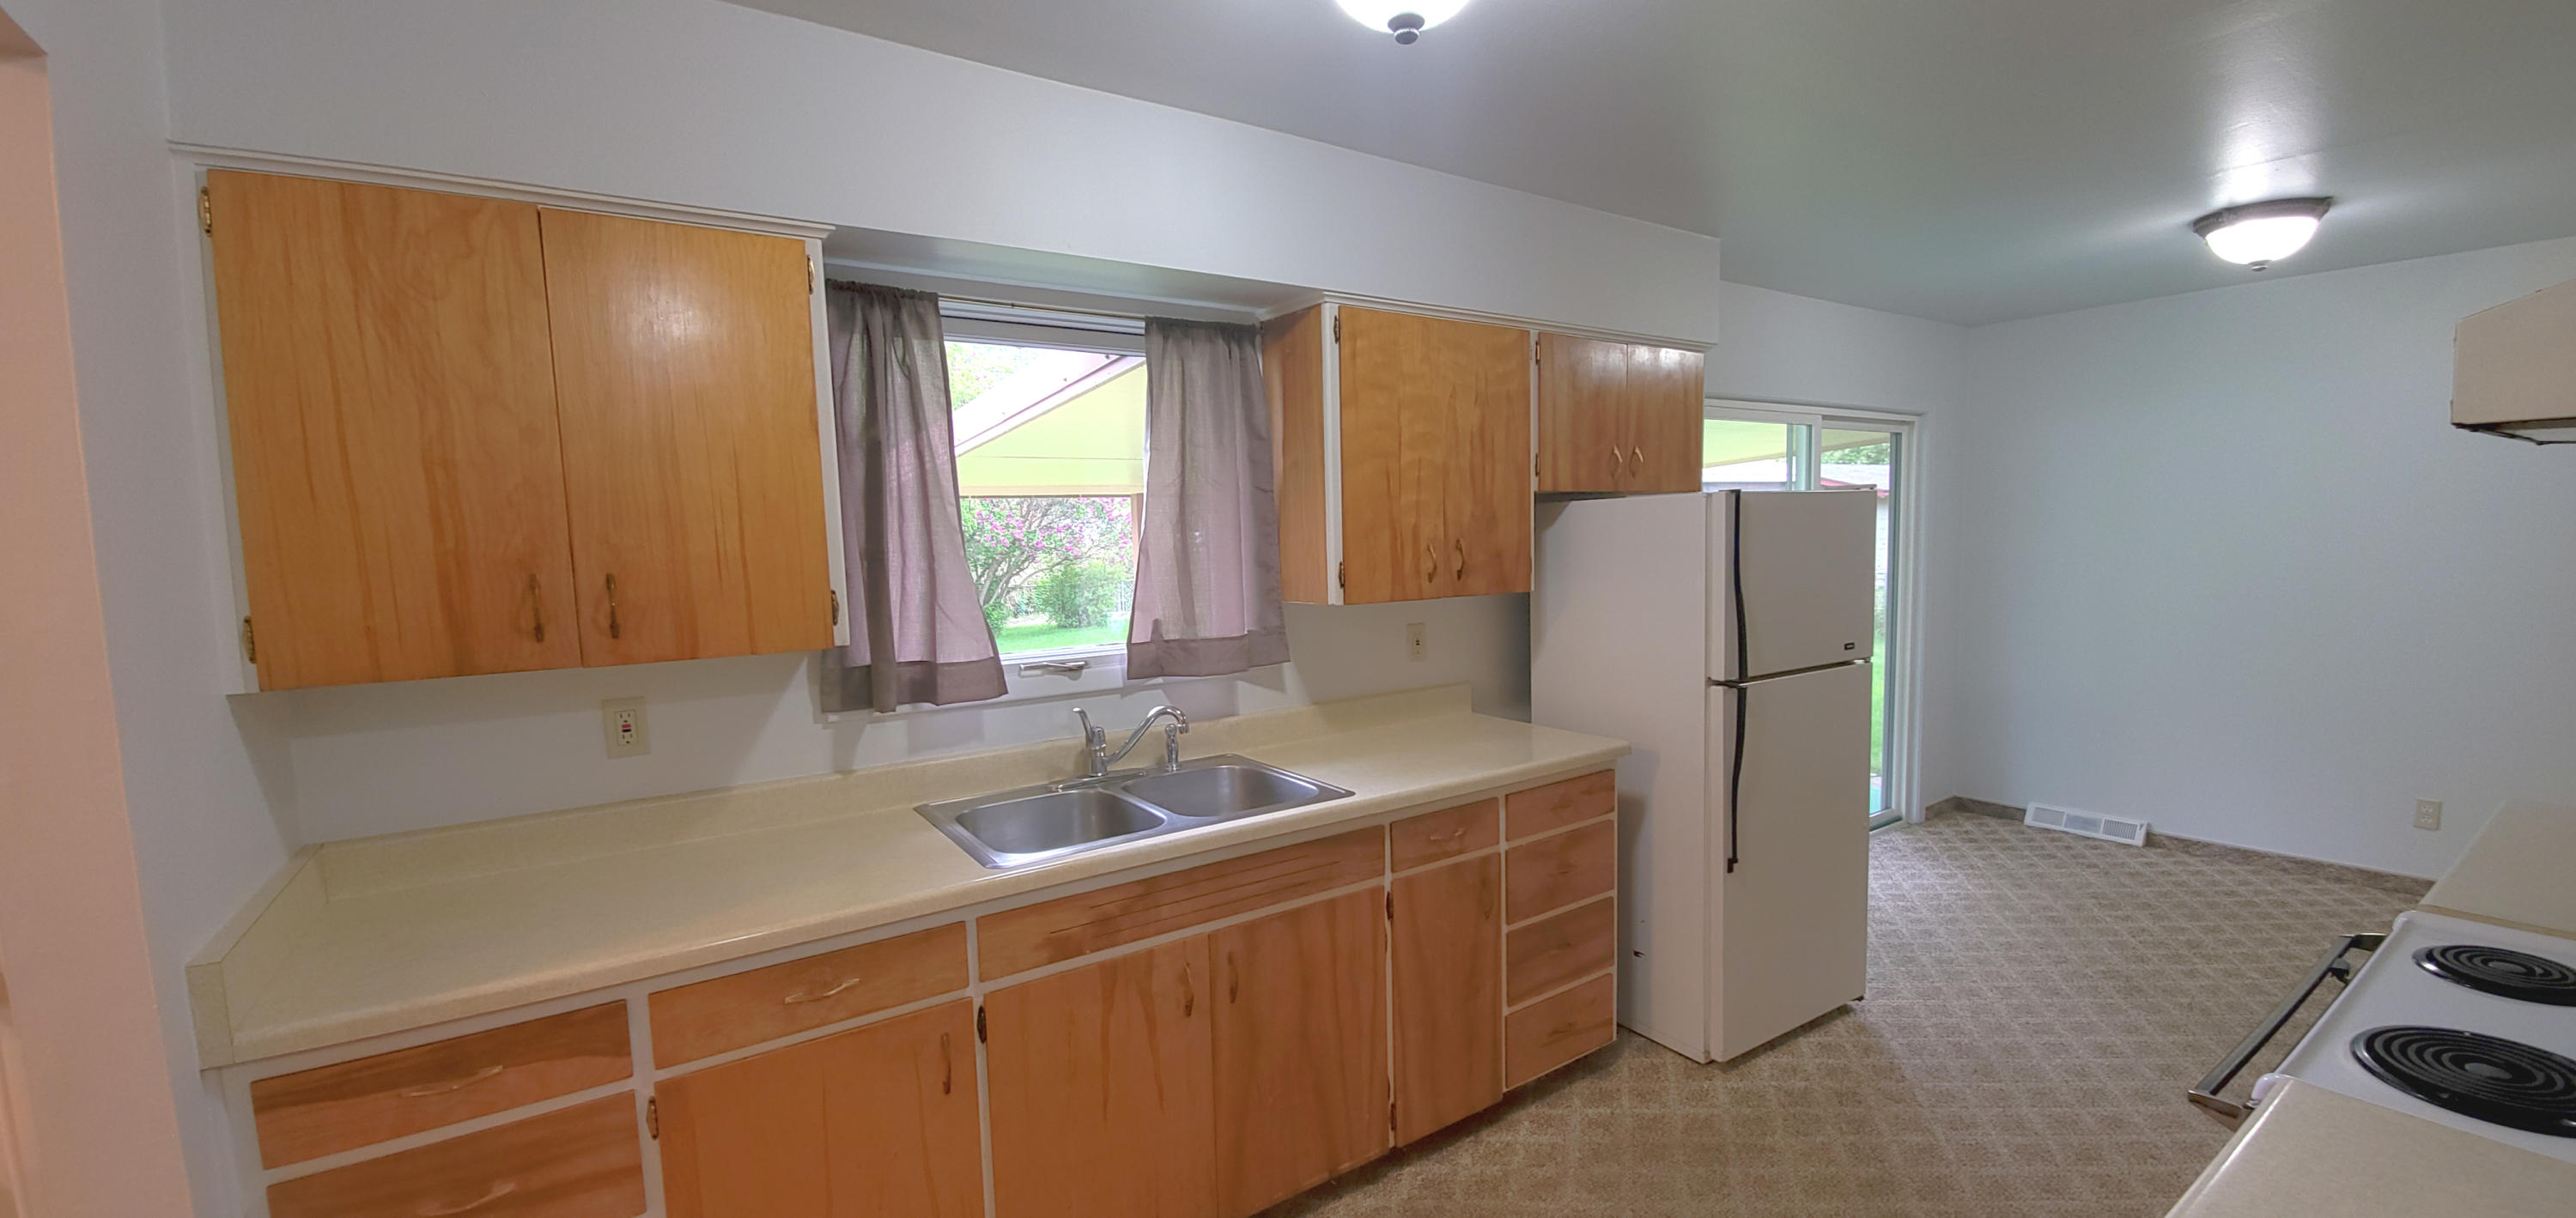 Property Image #7 for MLS #22107444